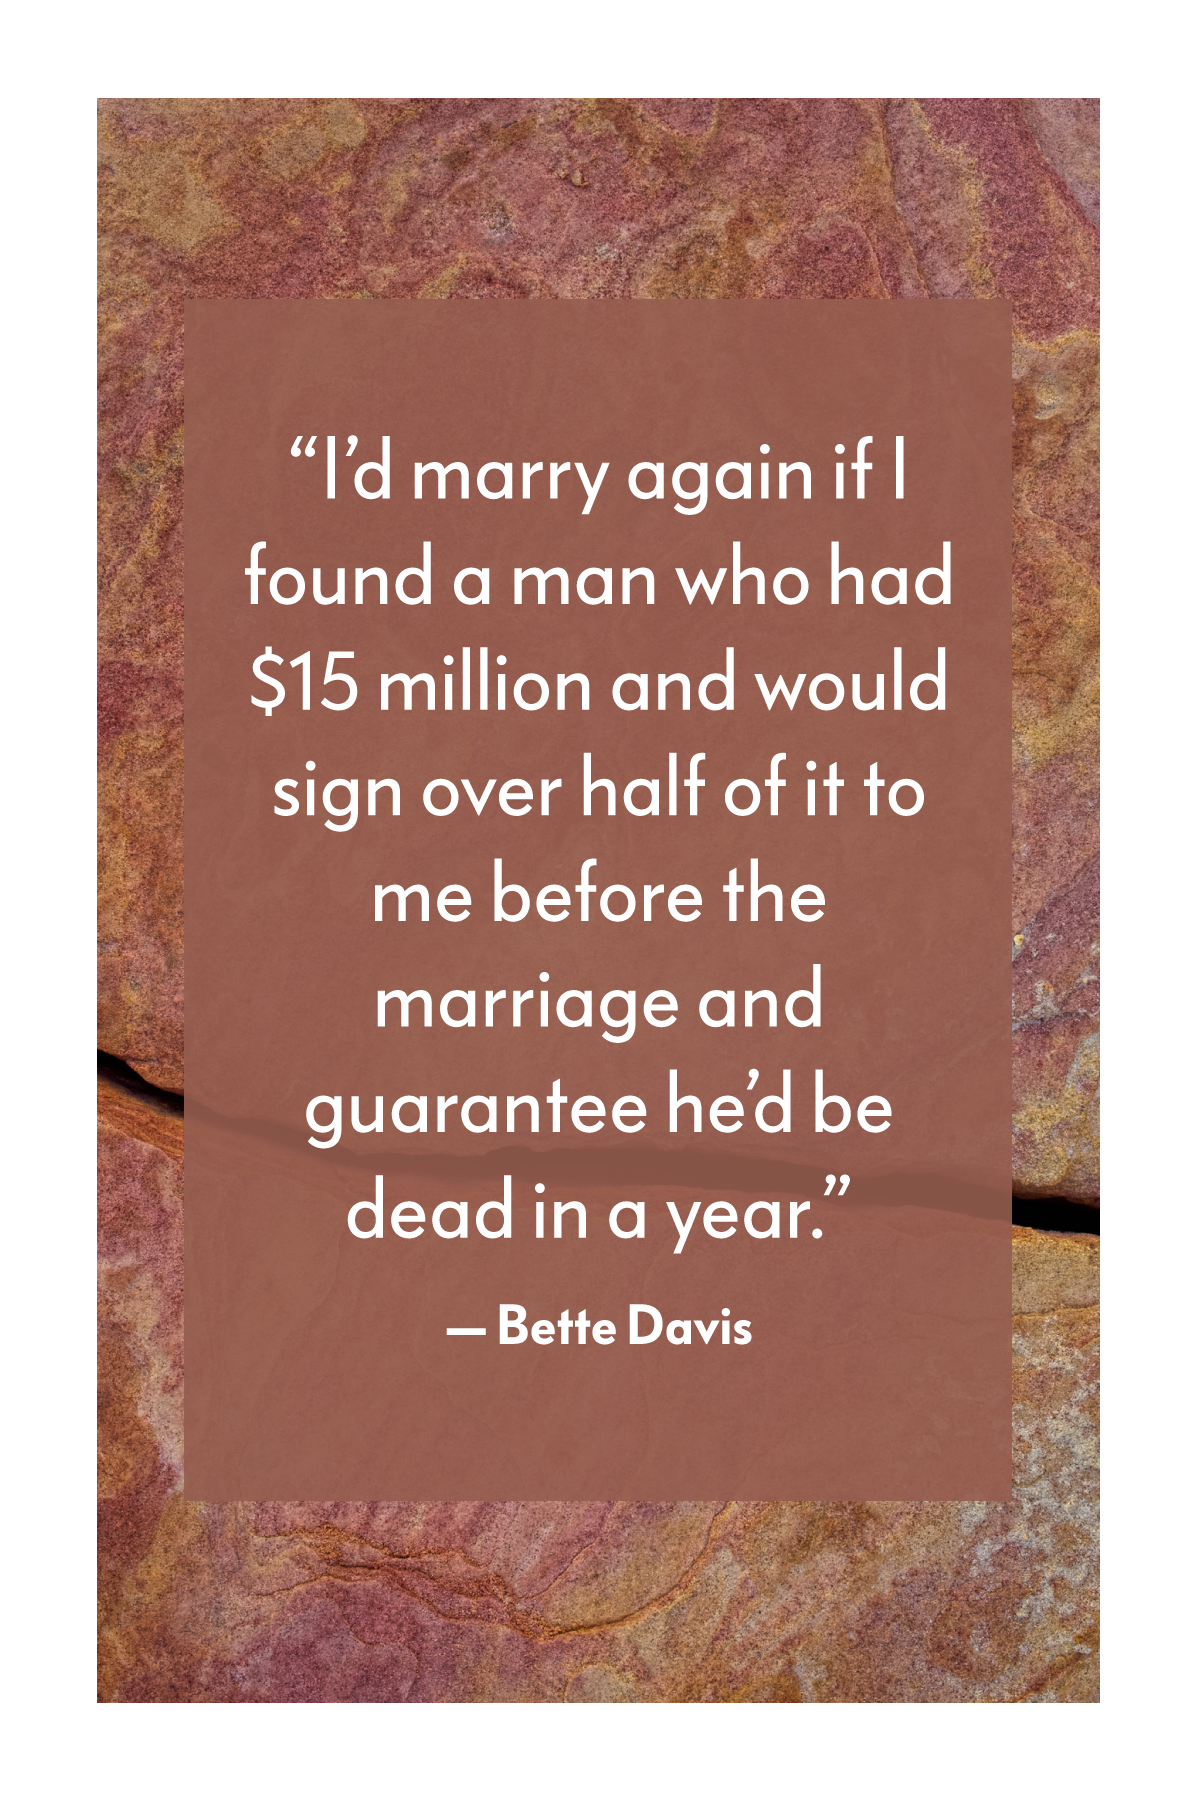 Uplifting marriage quotes